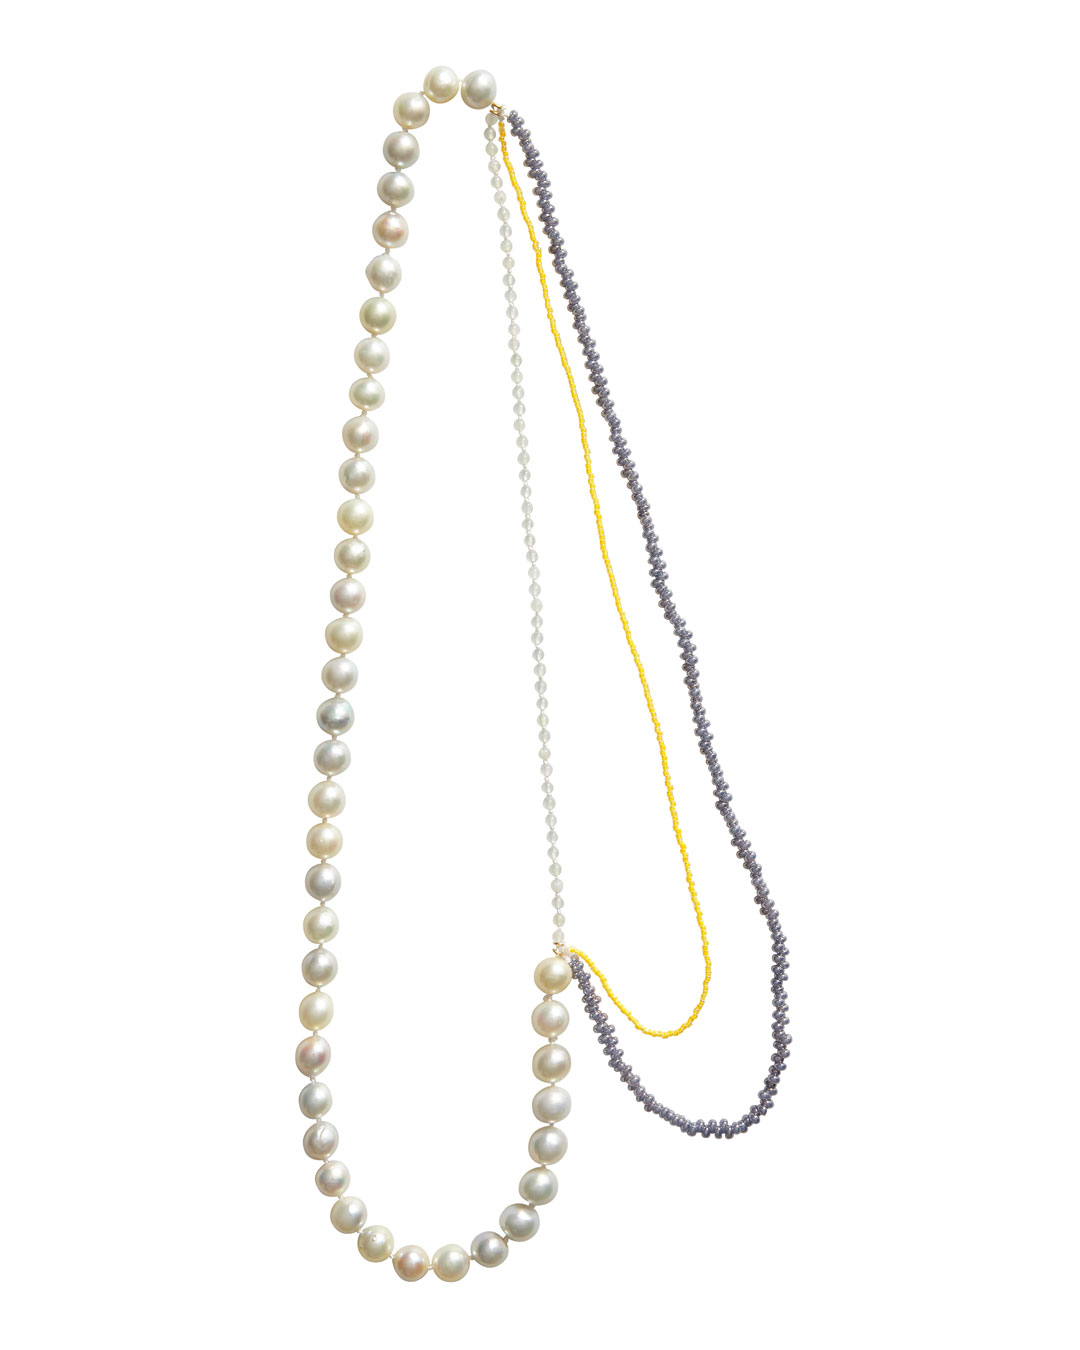 Annelies Planteijdt, Mooie stad - Gele purperen water (Beautiful City - Yellow Purple Water), 2020, necklace; Akoya pearls, jade, Japanese glass beads, gold, yarn,  630 mm, €2950